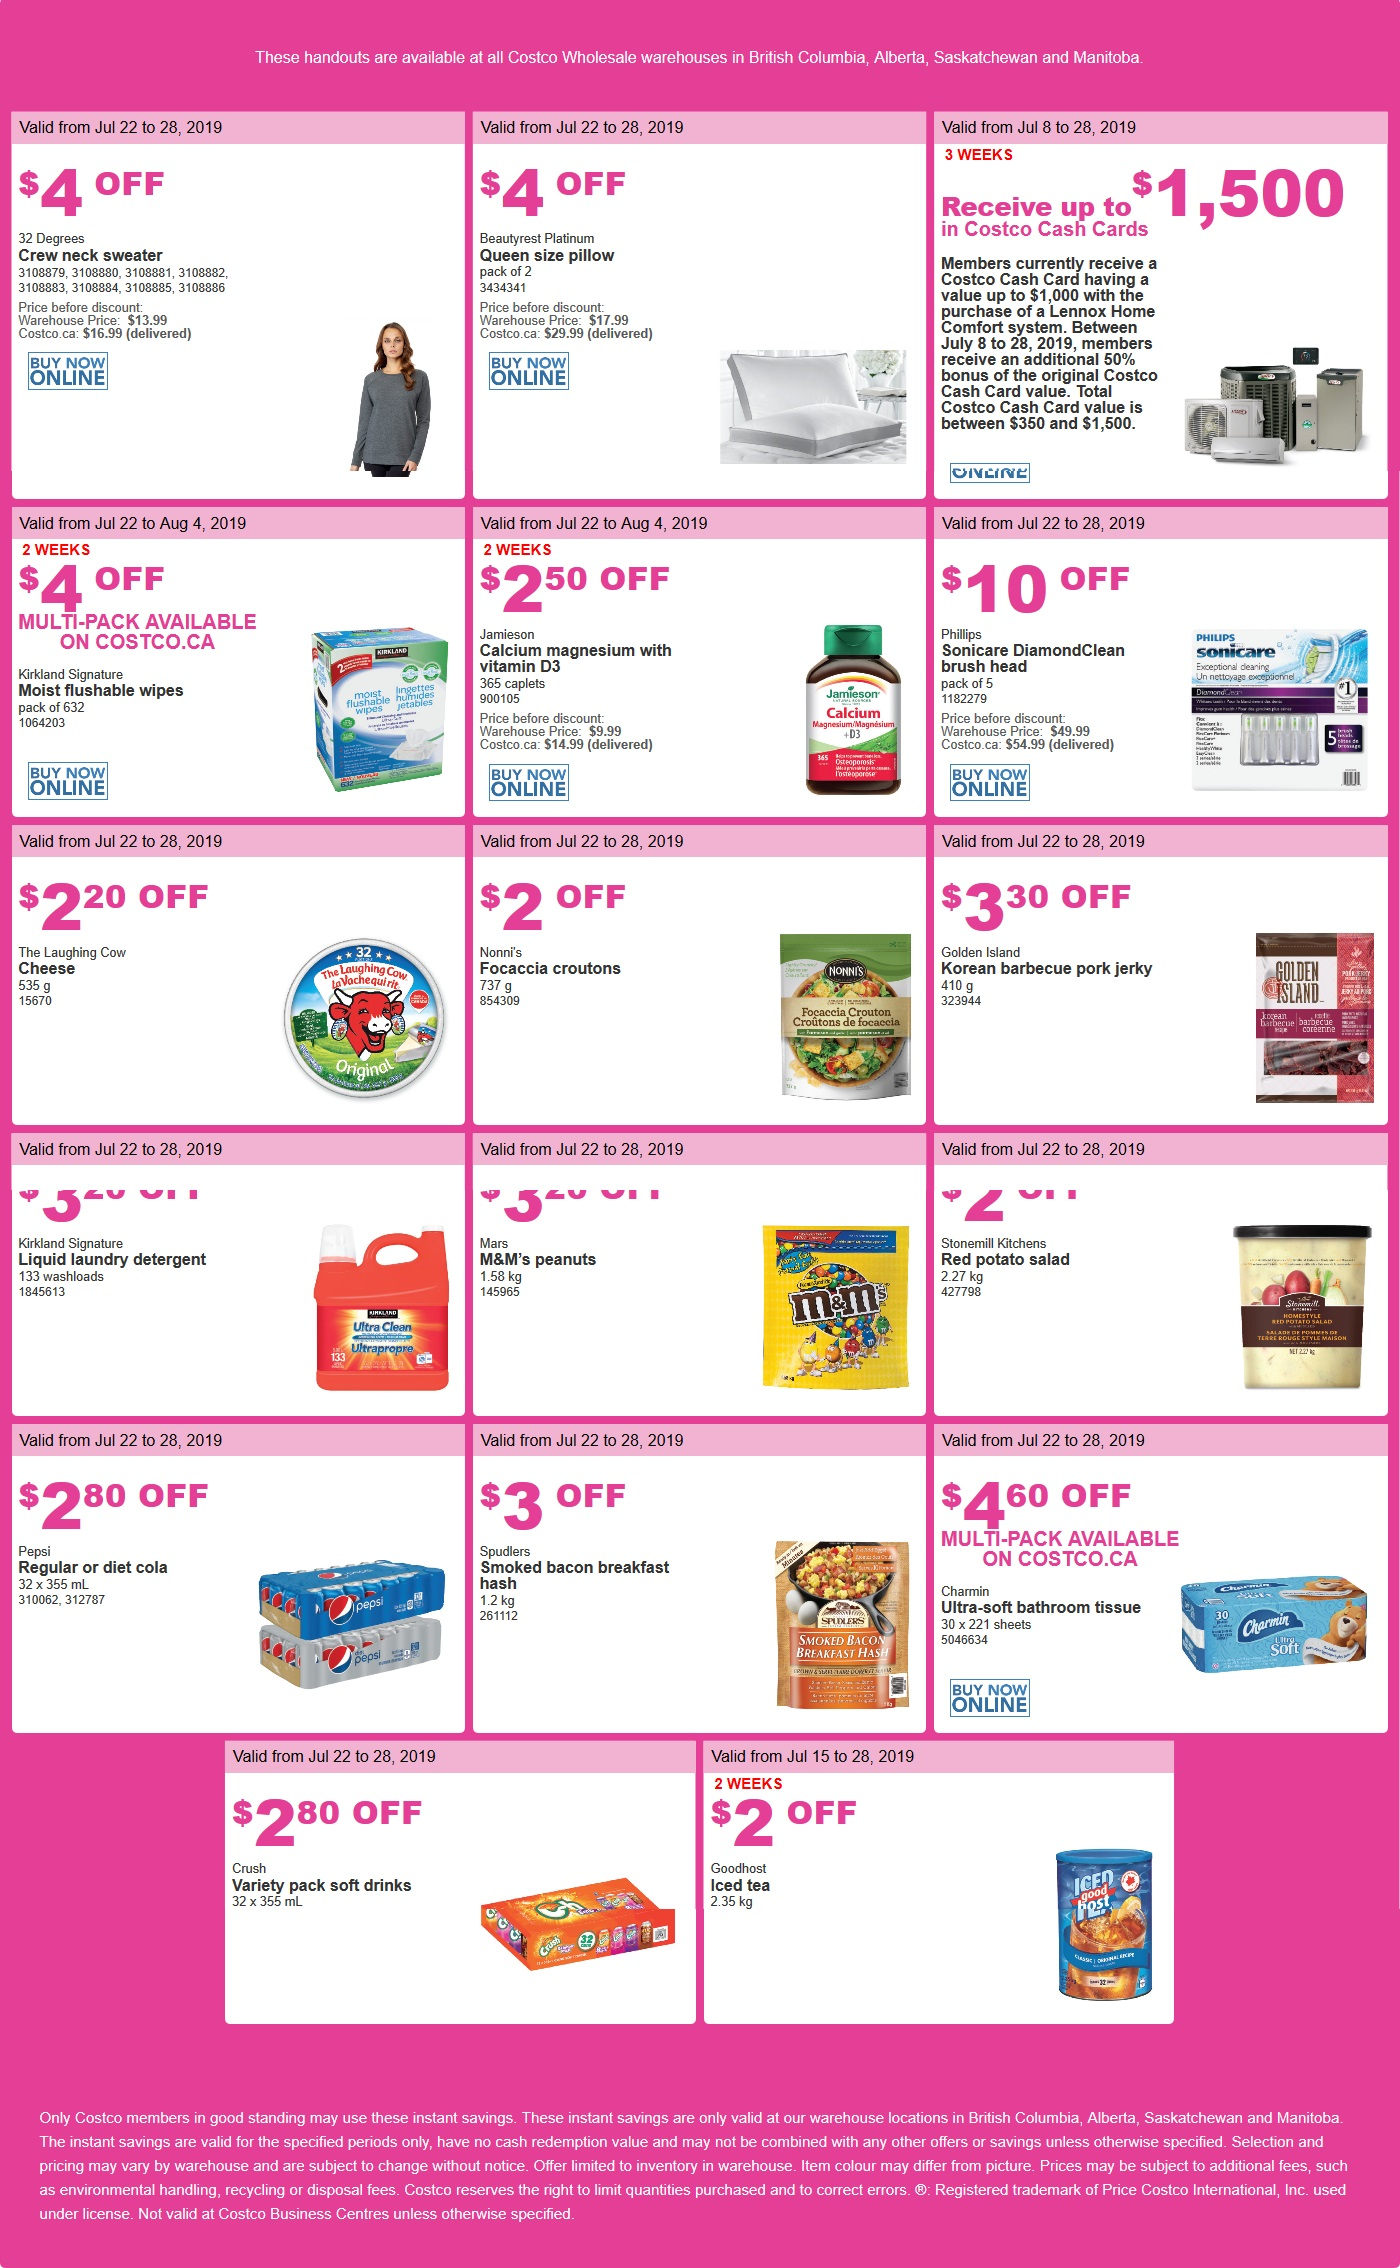 Costco Flyer for July 22-28, 2019 for BC, Alberta, Manitoba, Saskatchewan